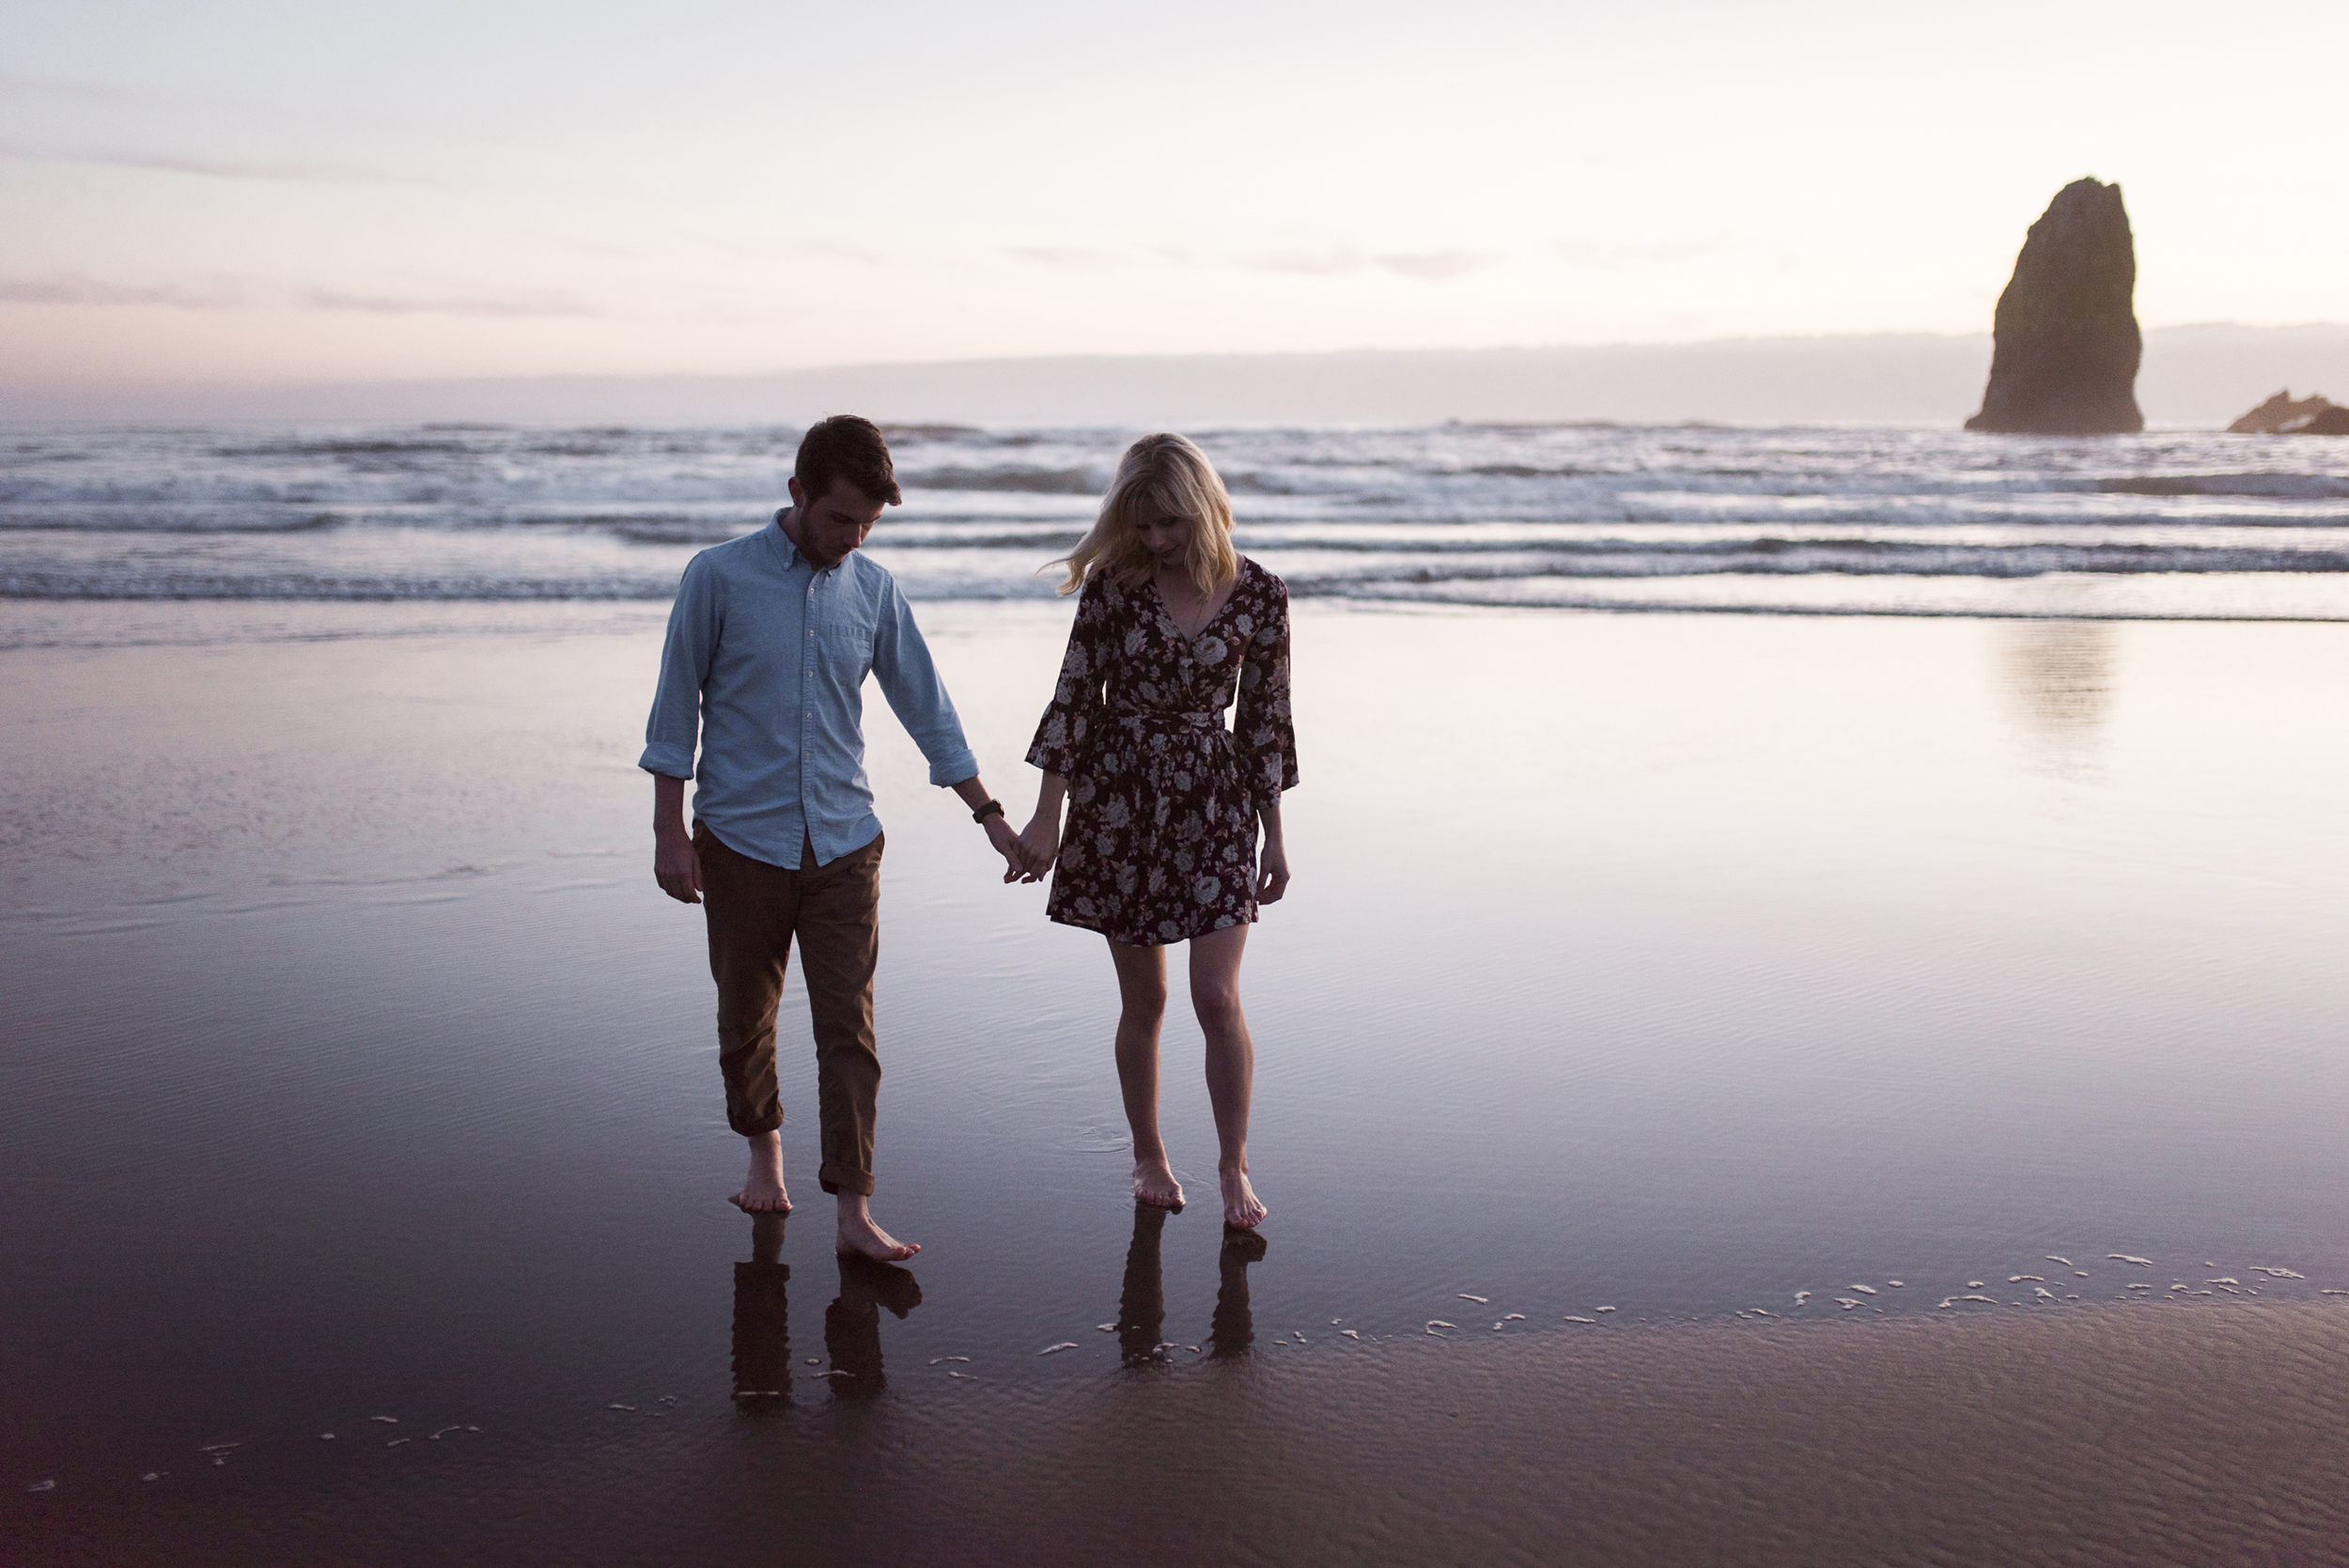 Cannon Beach Oregon Coast Adventure Couples Photographer 157.jpg